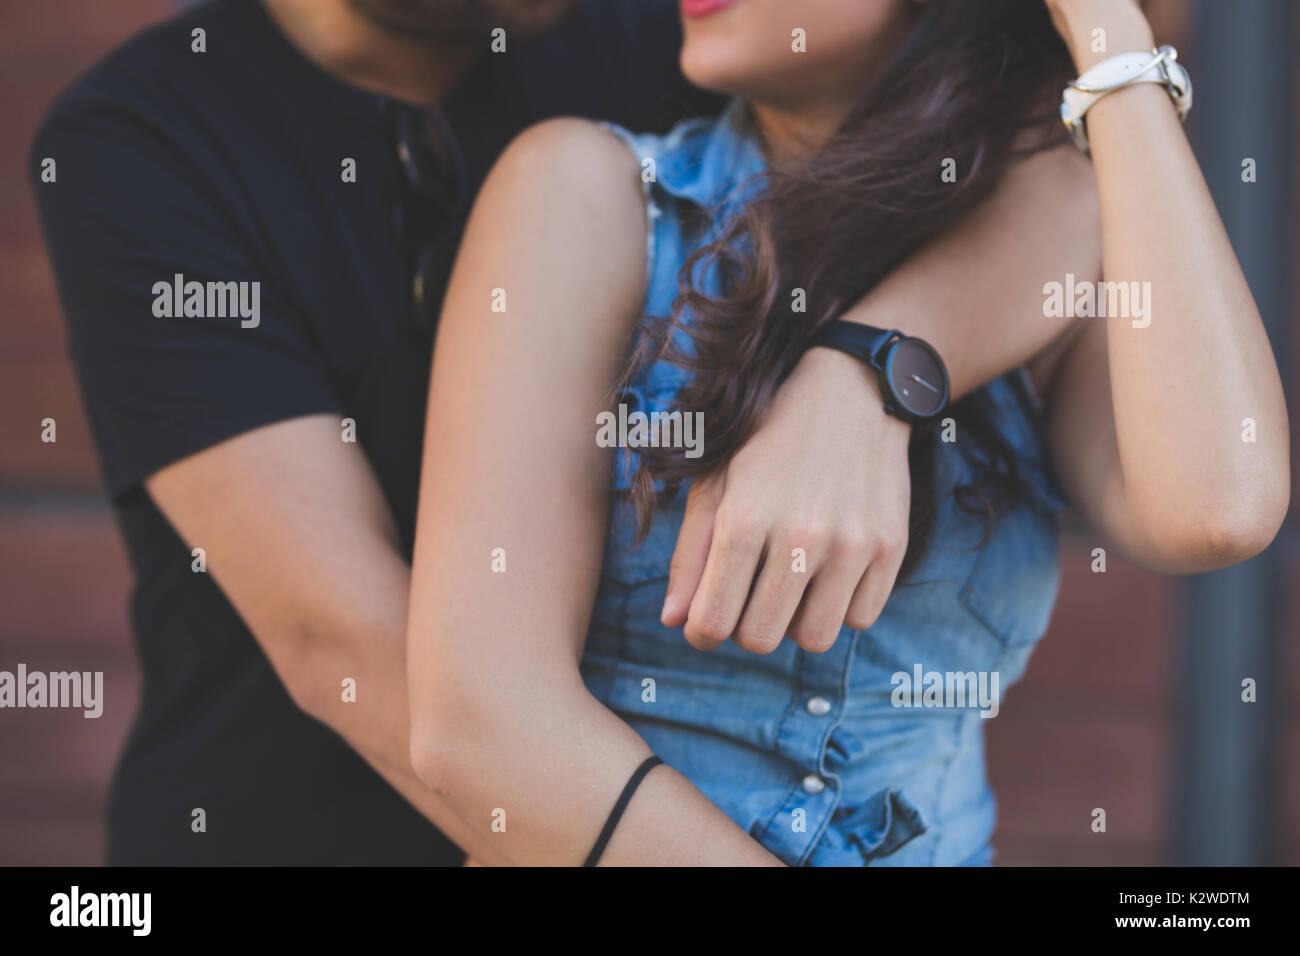 Cropped portrait of young couple embracing together - Stock Image